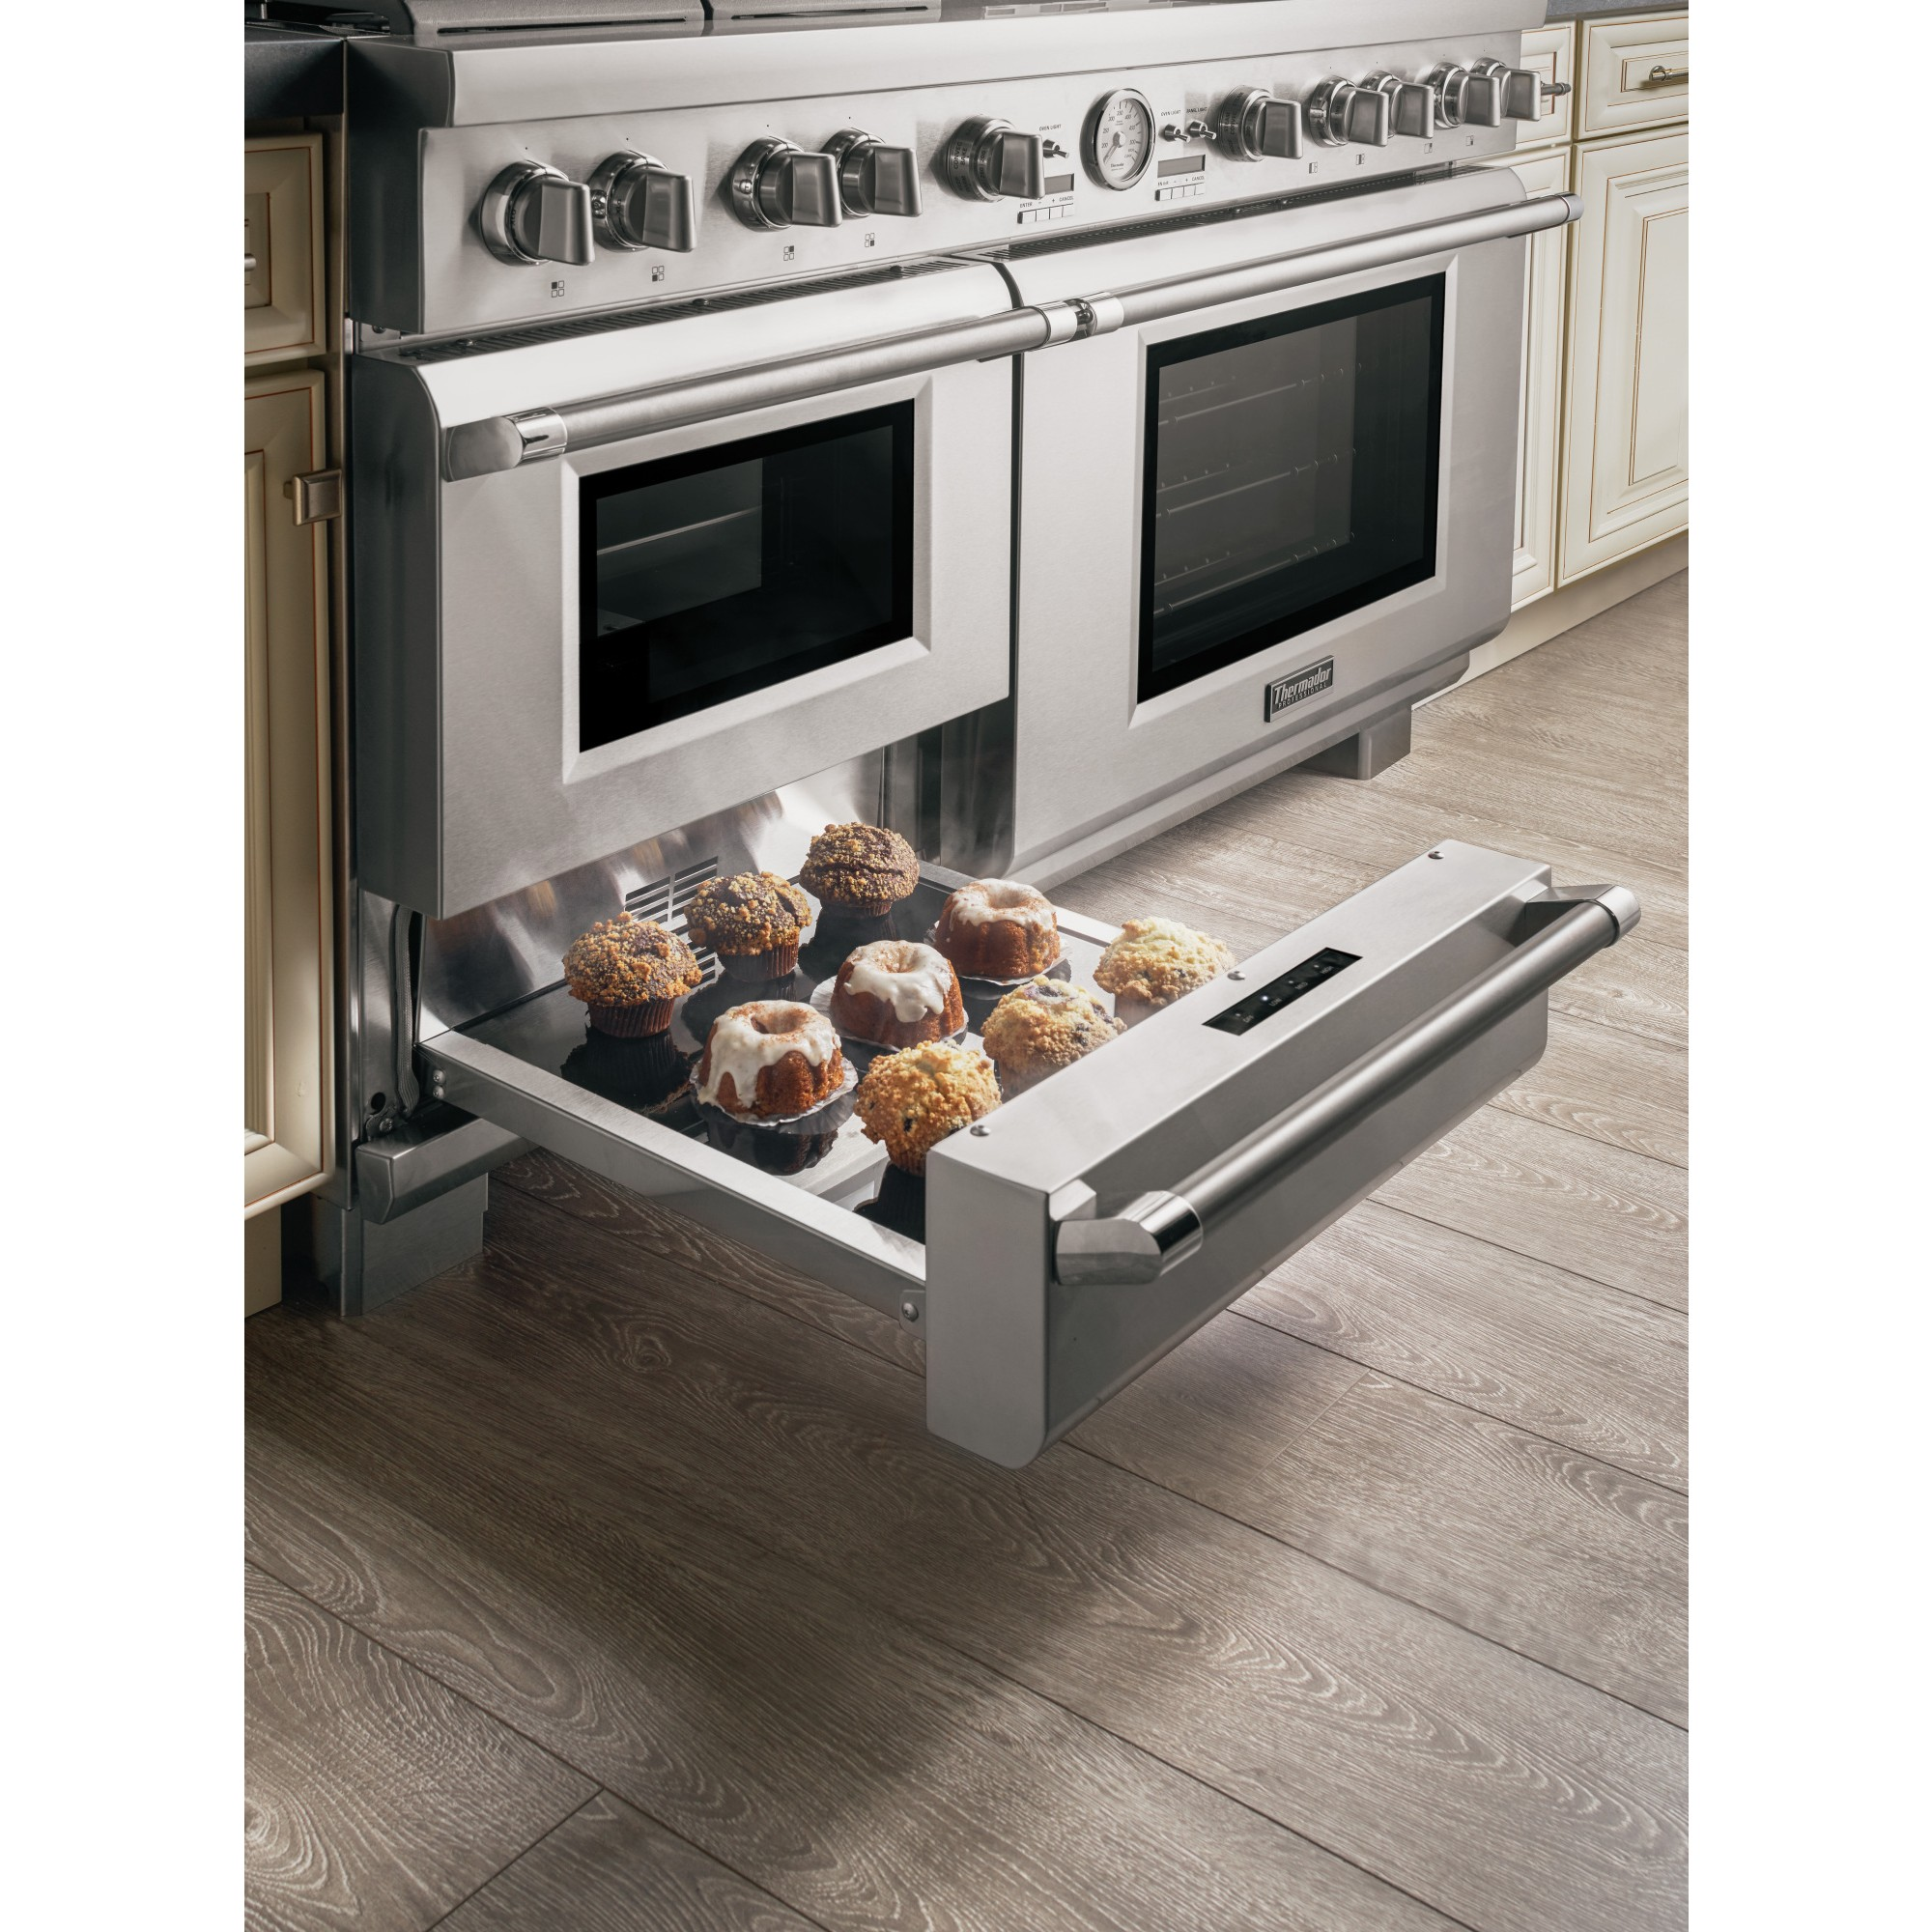 frigidaire kitchen package model homes pictures thermador prd606resg